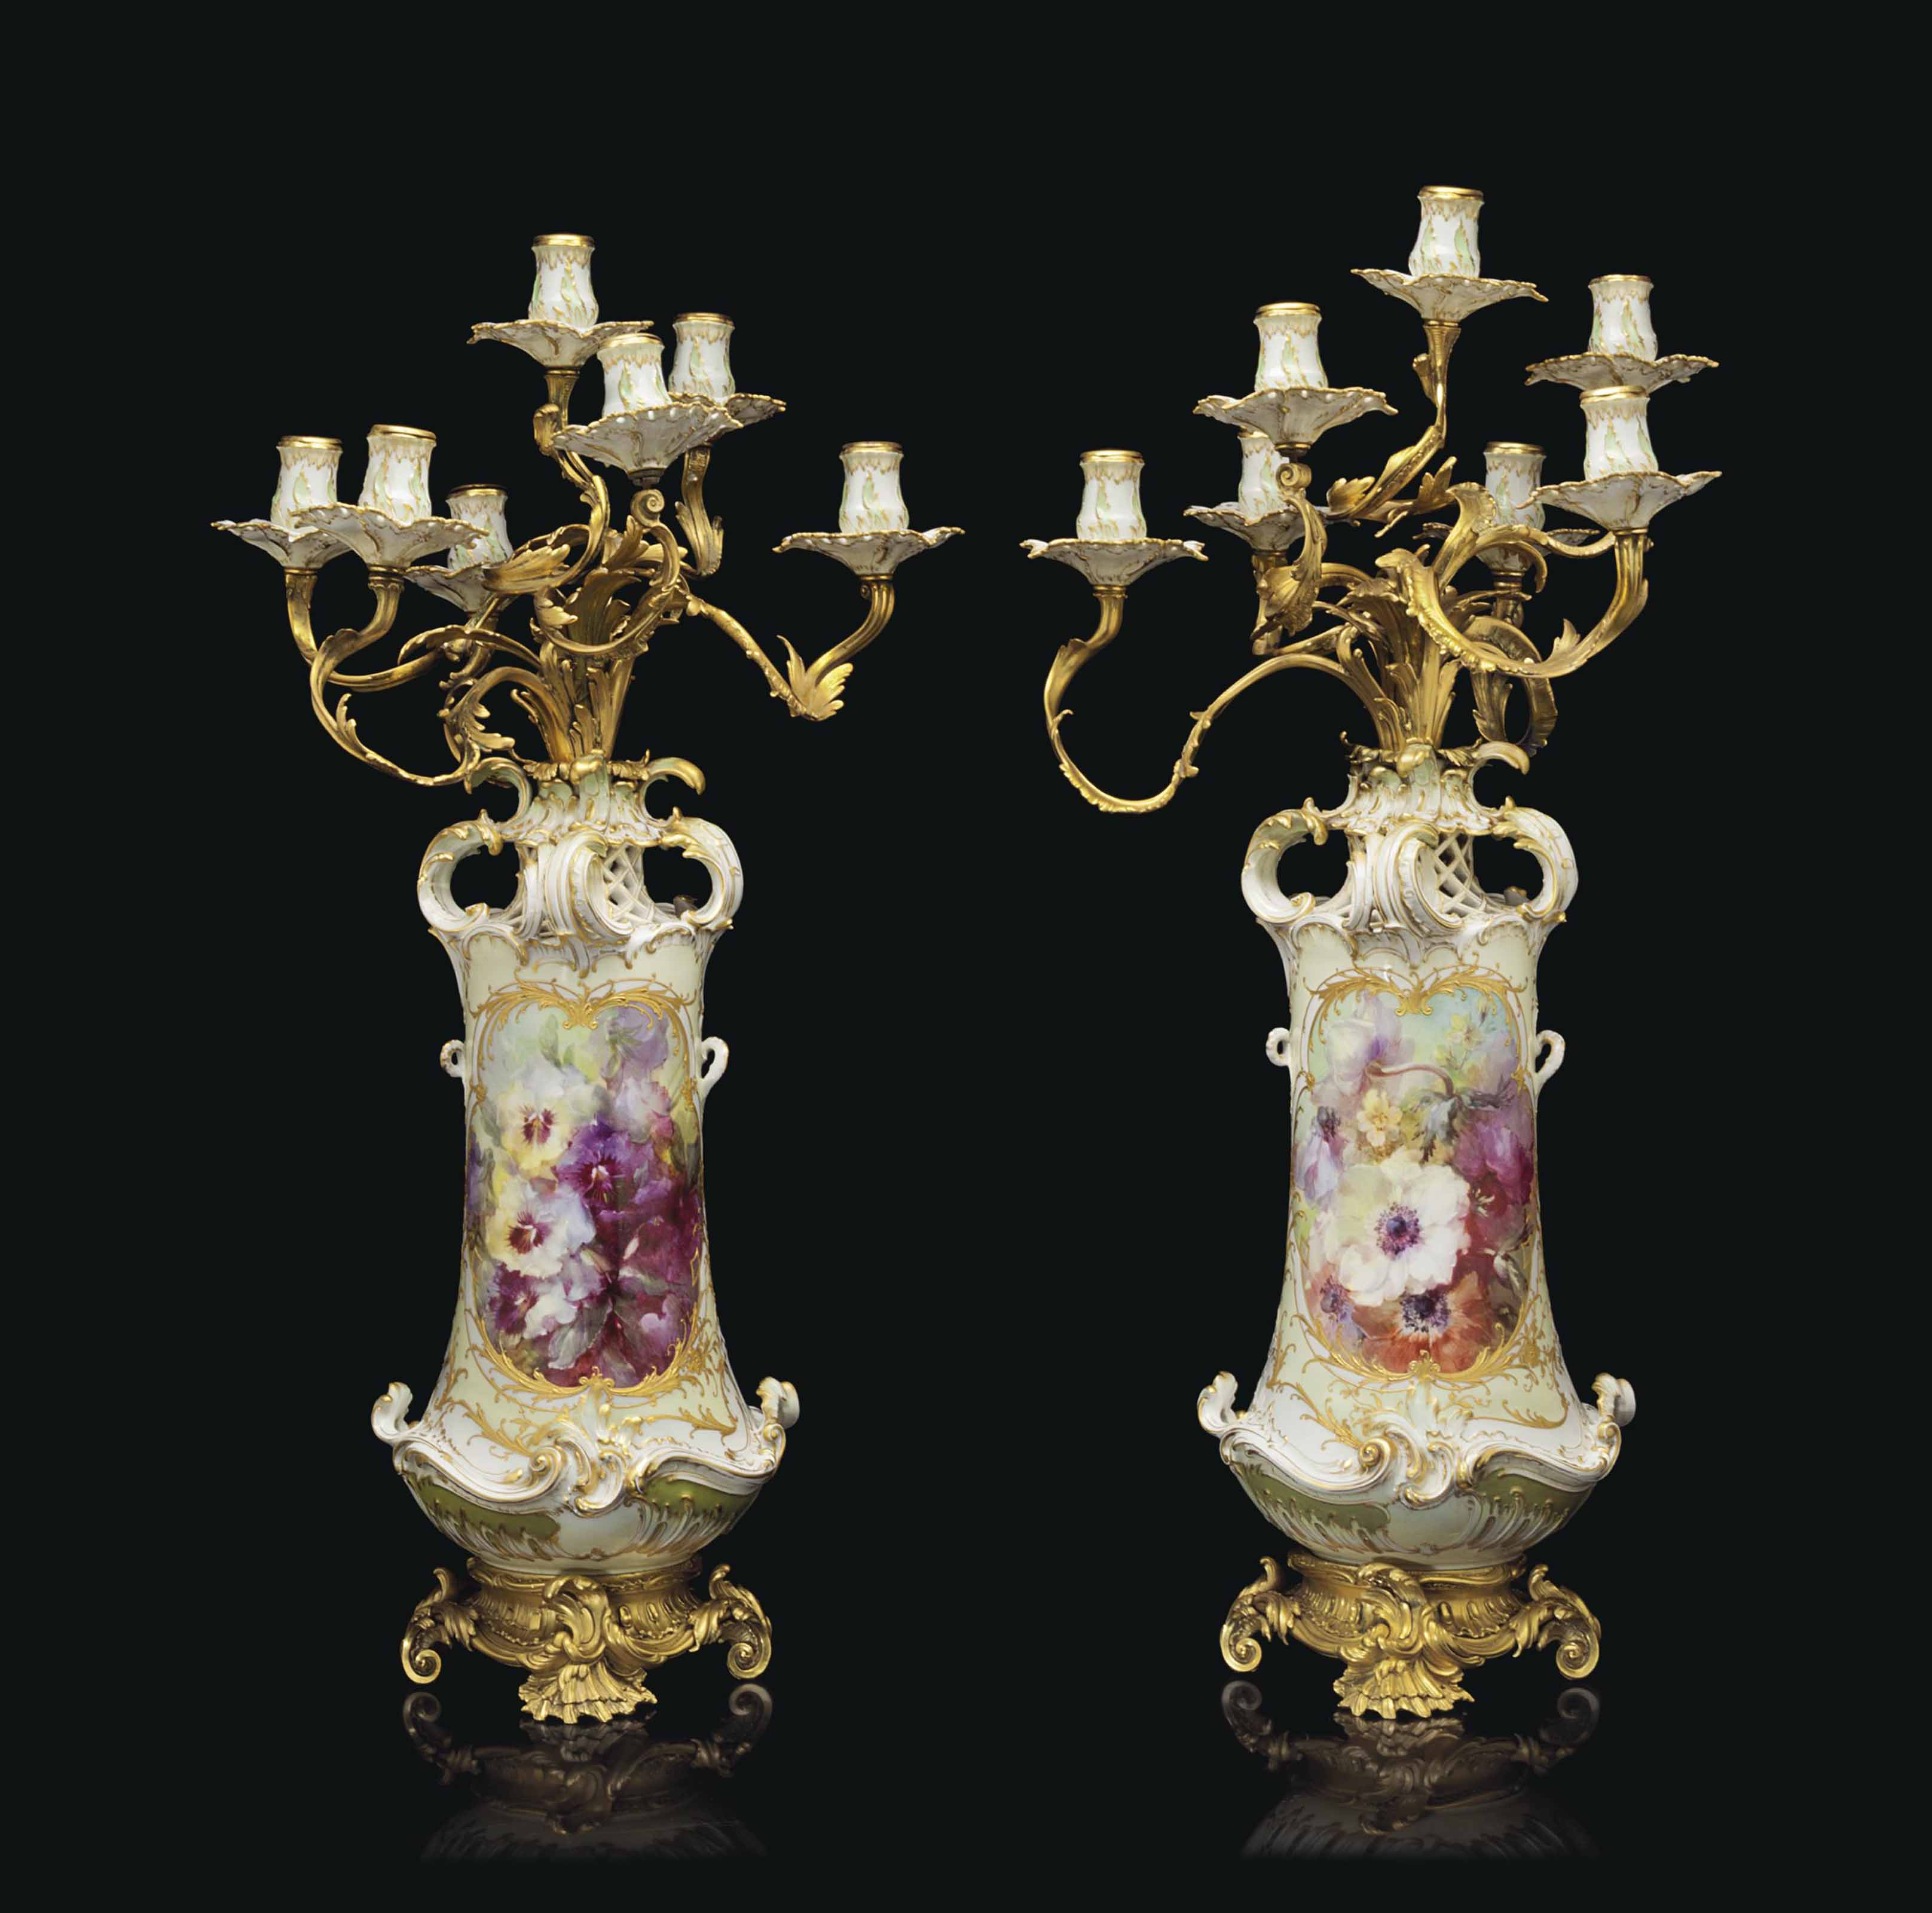 A PAIR OF ORMOLU-MOUNTED BERLIN PORCELAIN PALE-YELLOW GROUND SEVEN-LIGHT CANDELABRA